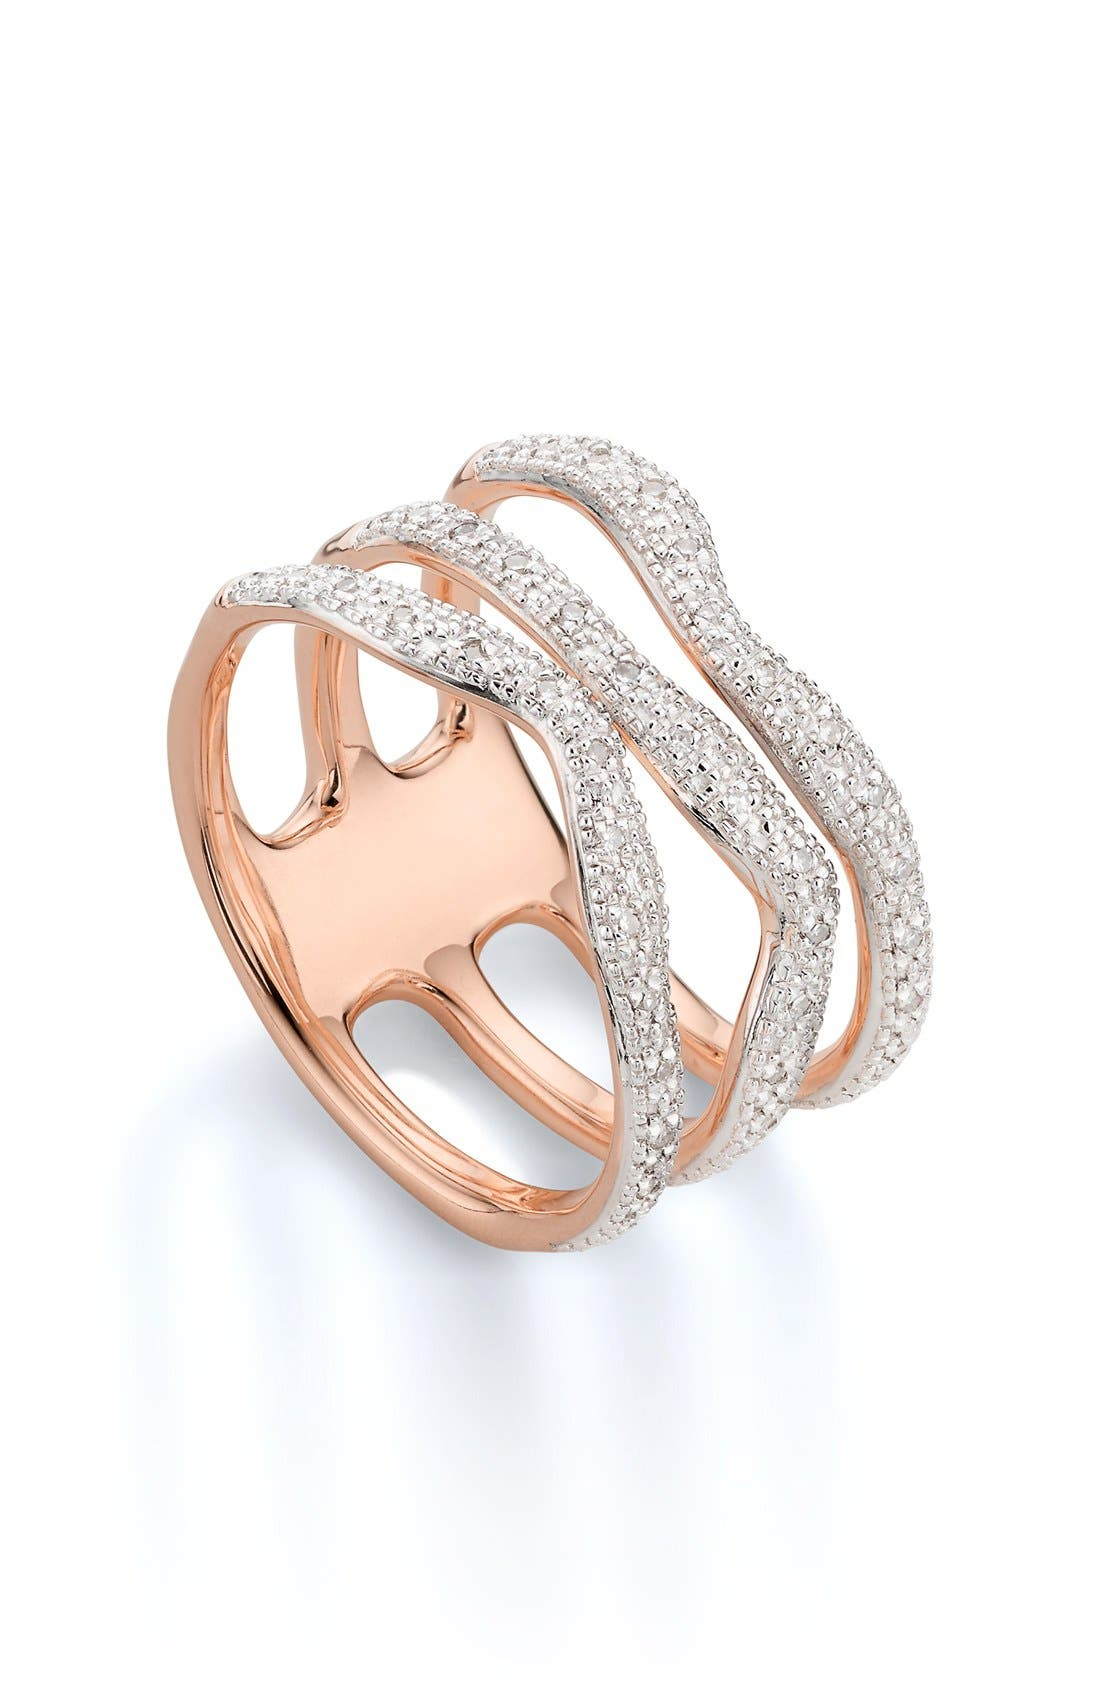 Alternate Image 1 Selected - Monica Vinader 'Riva' Three Band Diamond Ring